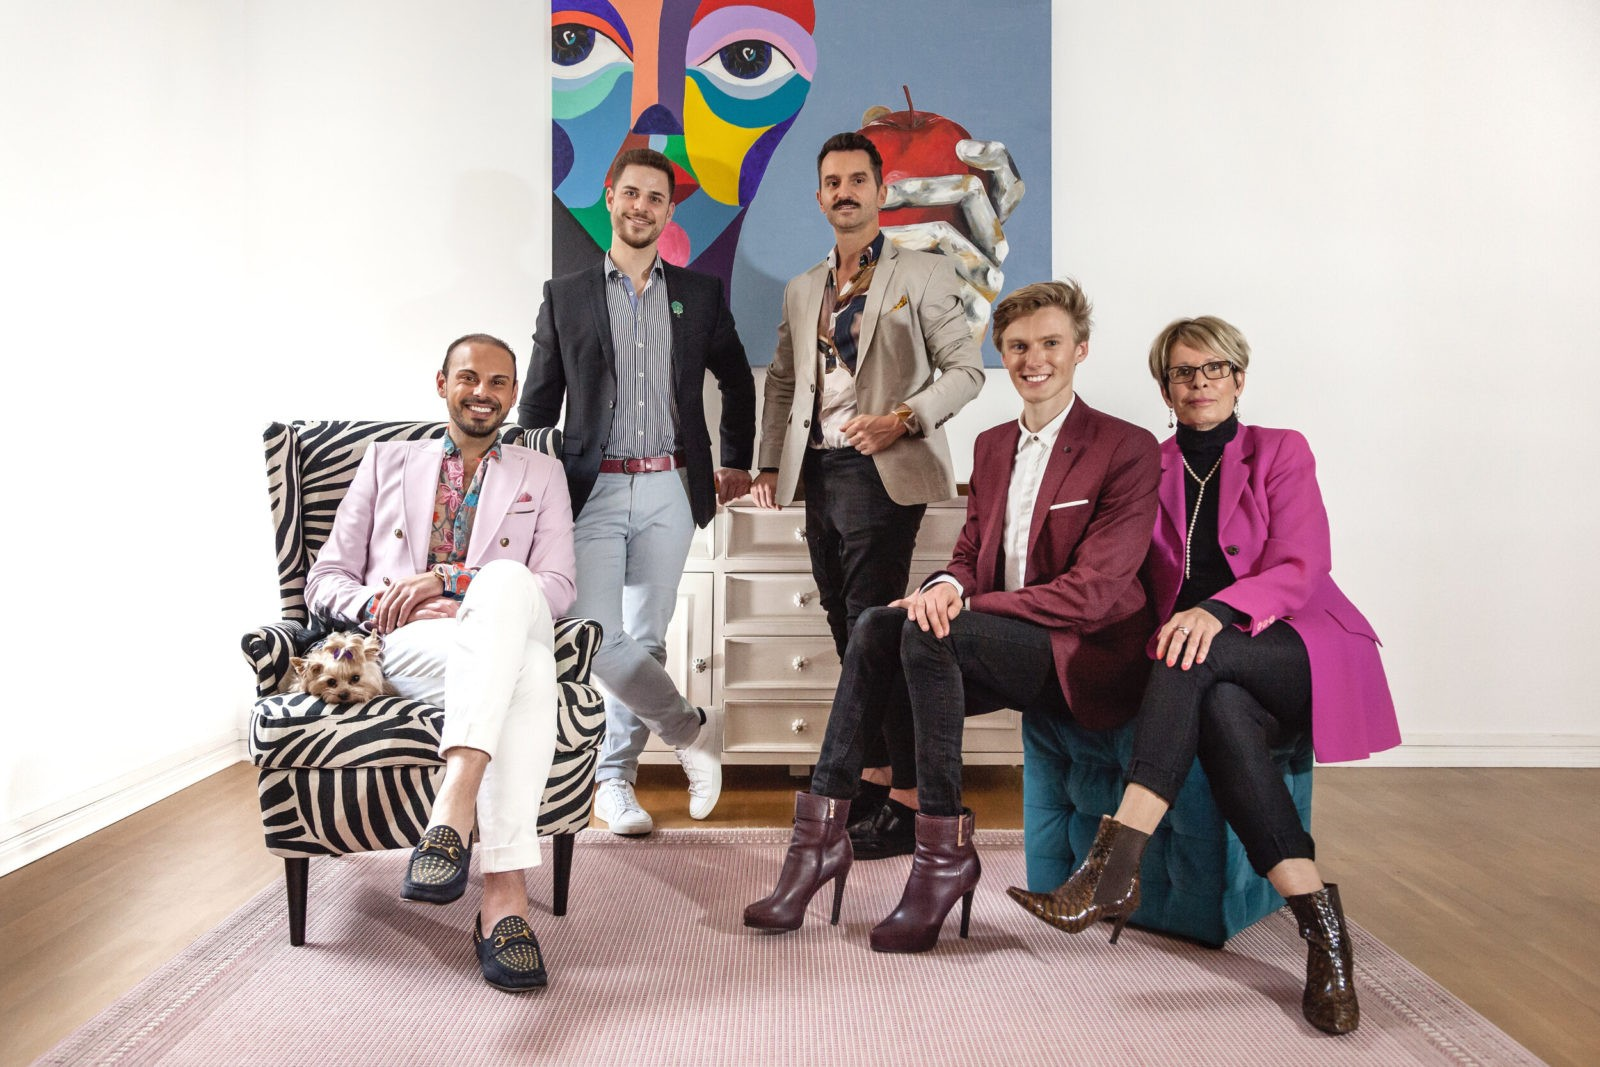 Team DARNA - The Queer Real Estate Agency